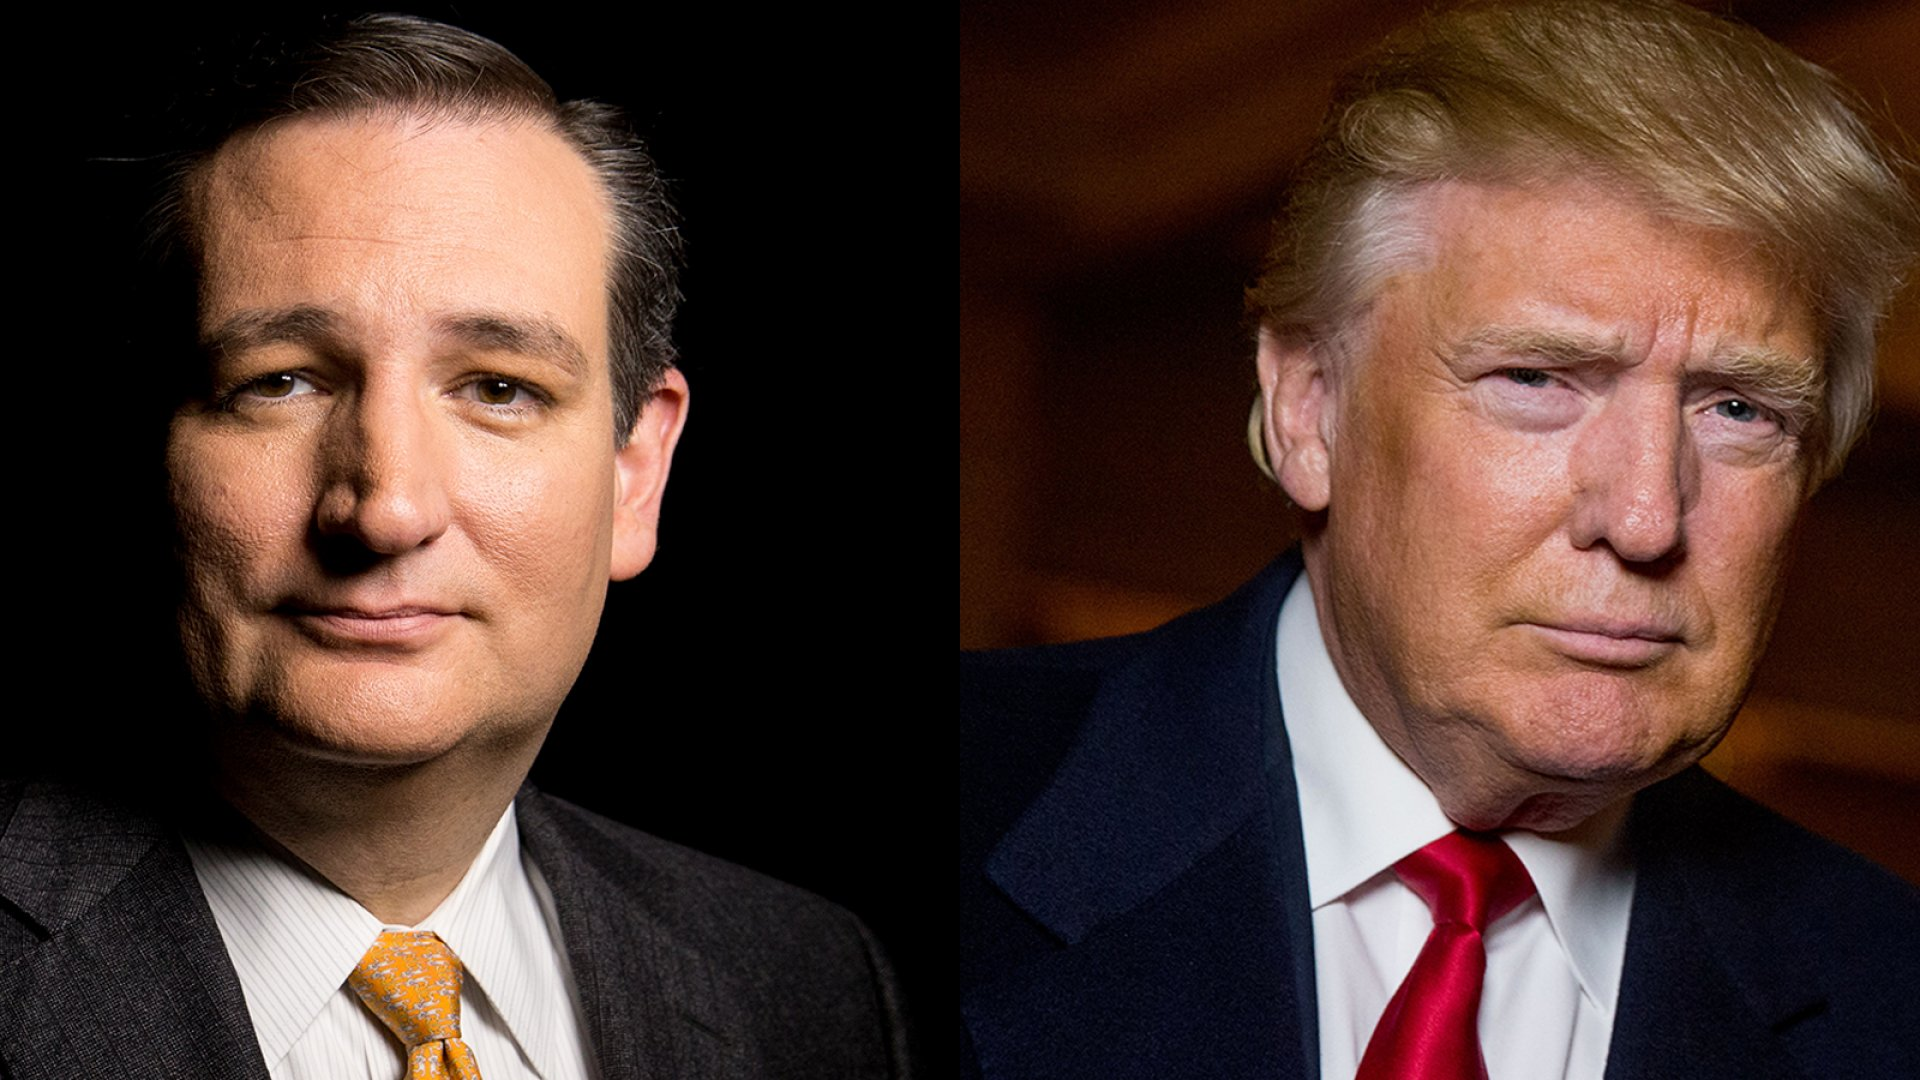 How Donald Trump and Ted Cruz Stack Up on Small Business Issues